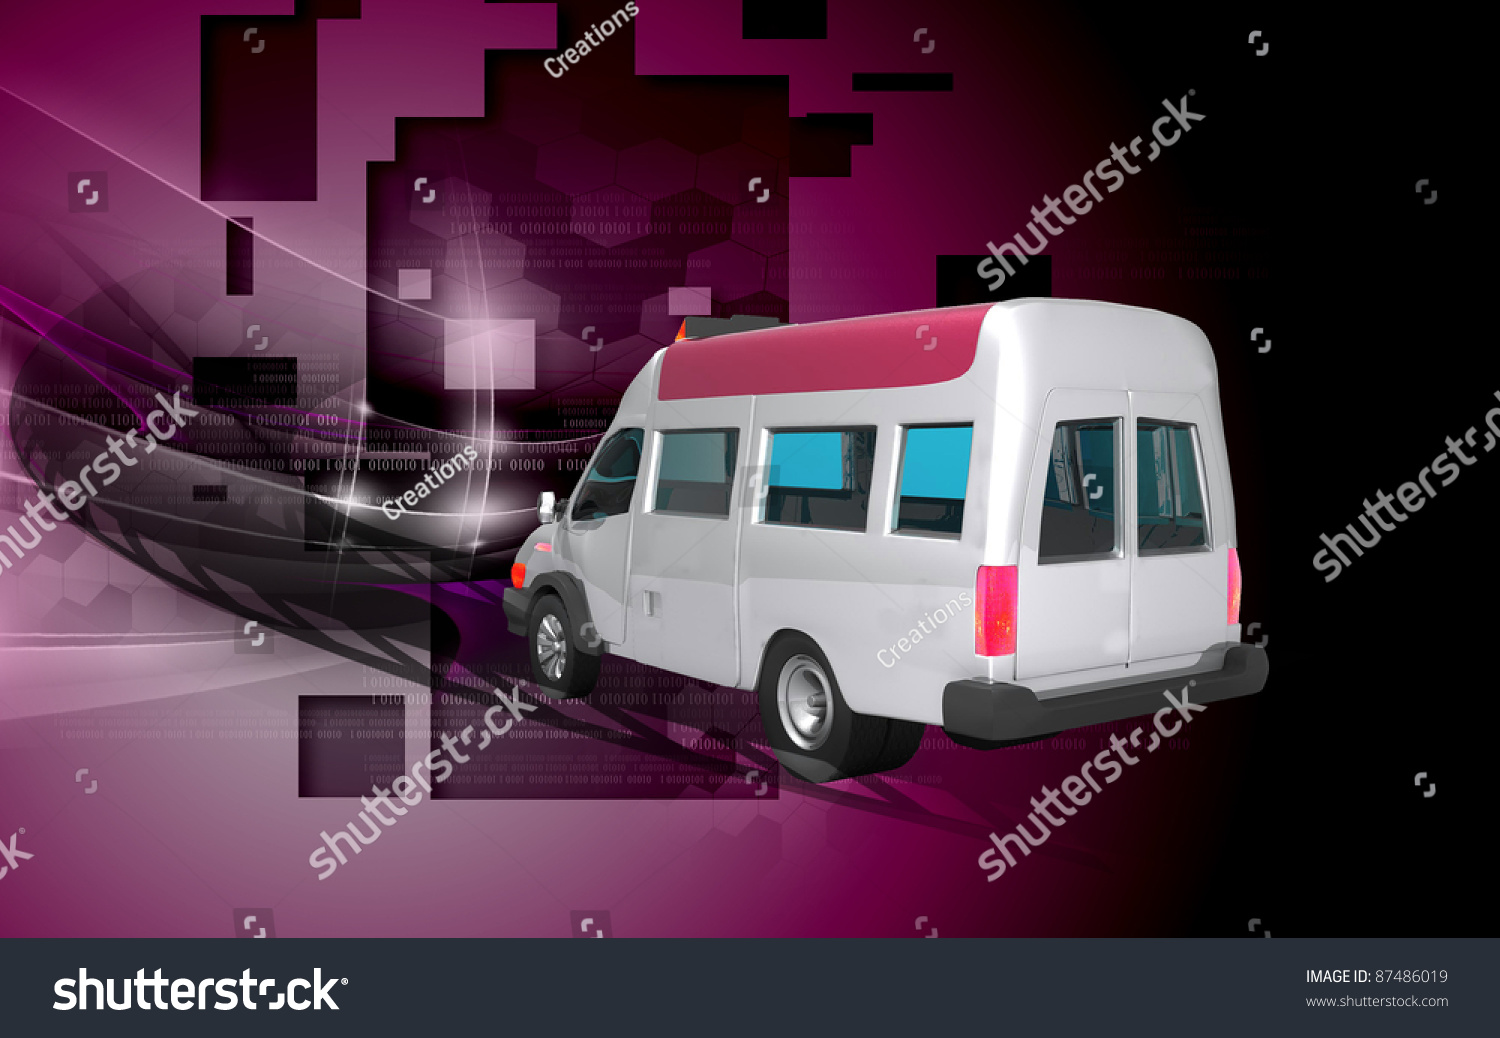 digital illustration ambulance colour background stock illustration 87486019 shutterstock - Ambulance Pictures To Colour